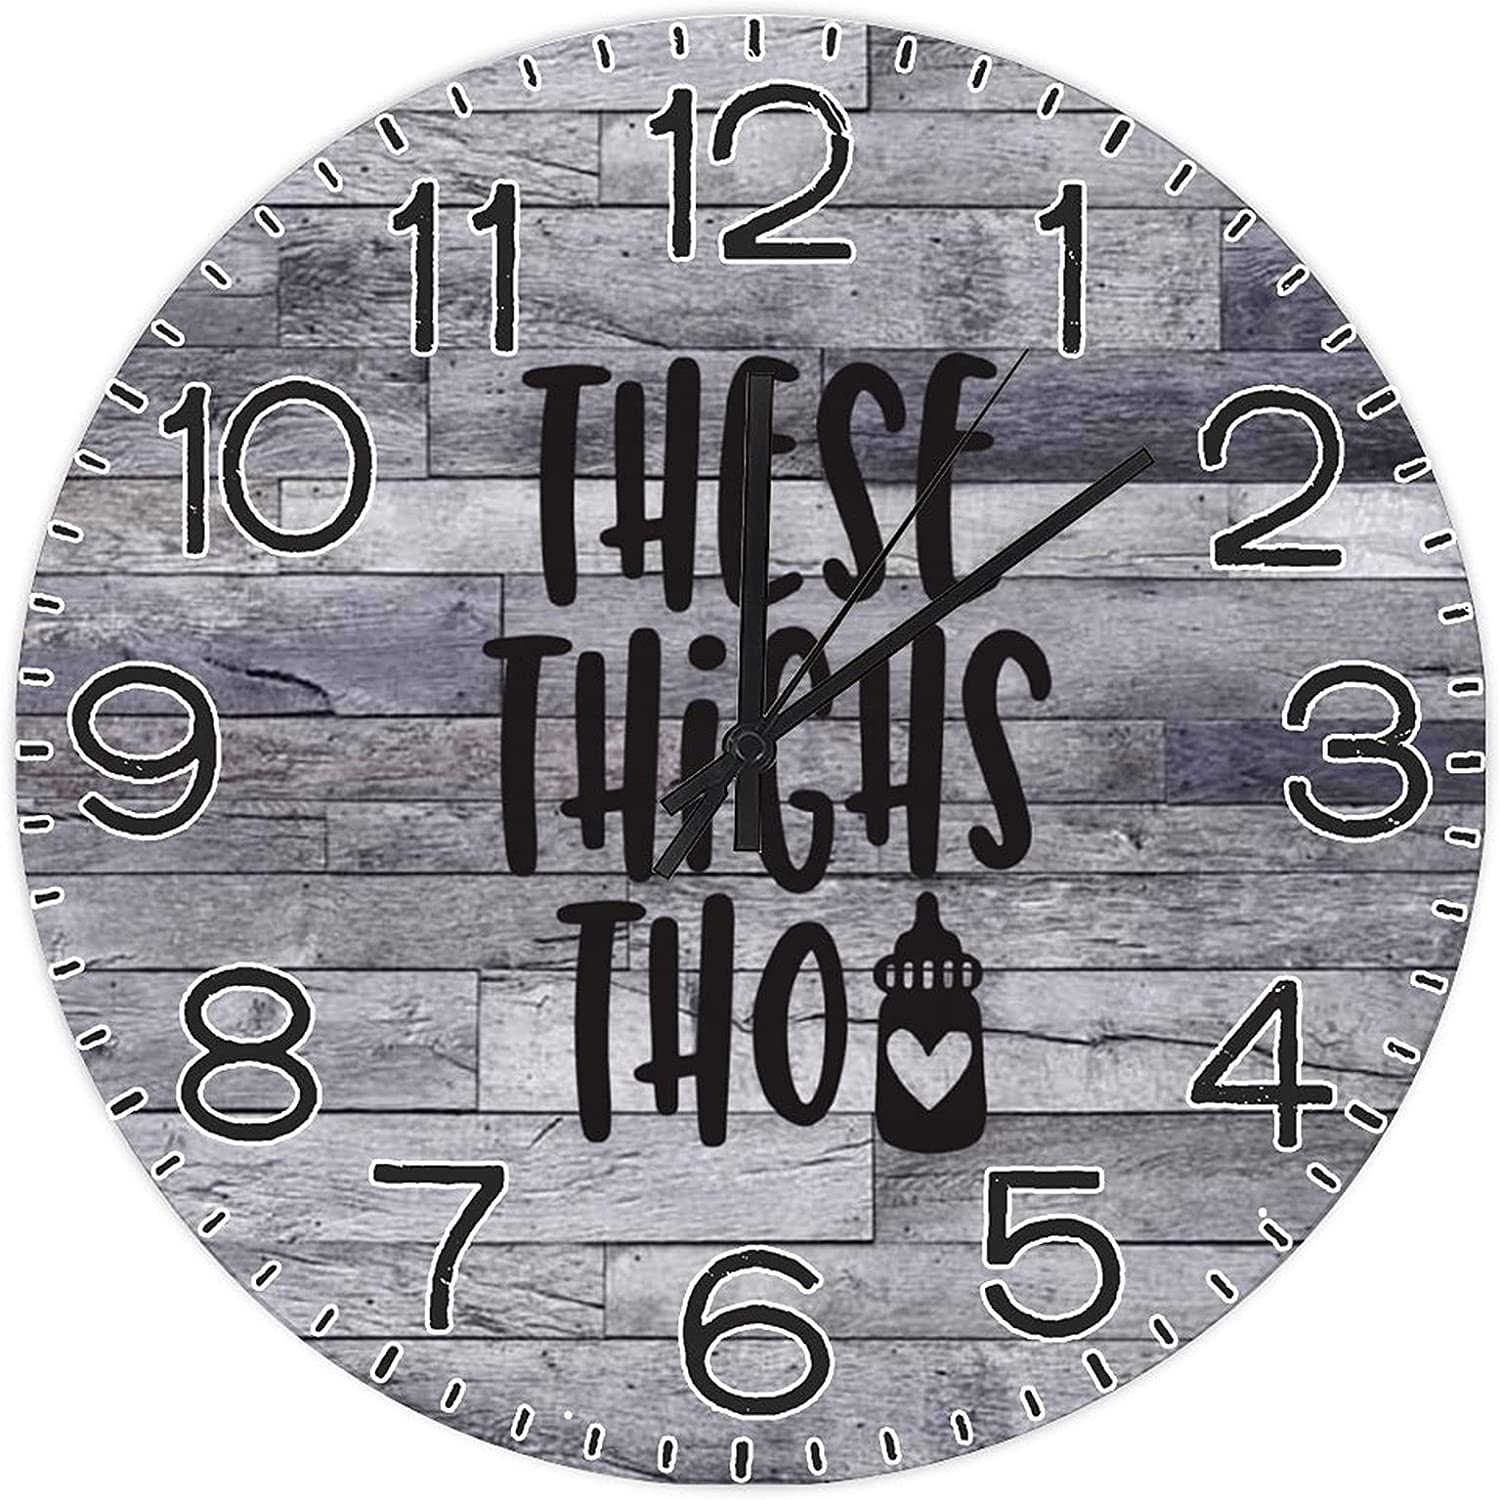 Max 43% OFF by Unbranded Decorative Wall Bombing new work Clock Babie Thighs Baby THO These